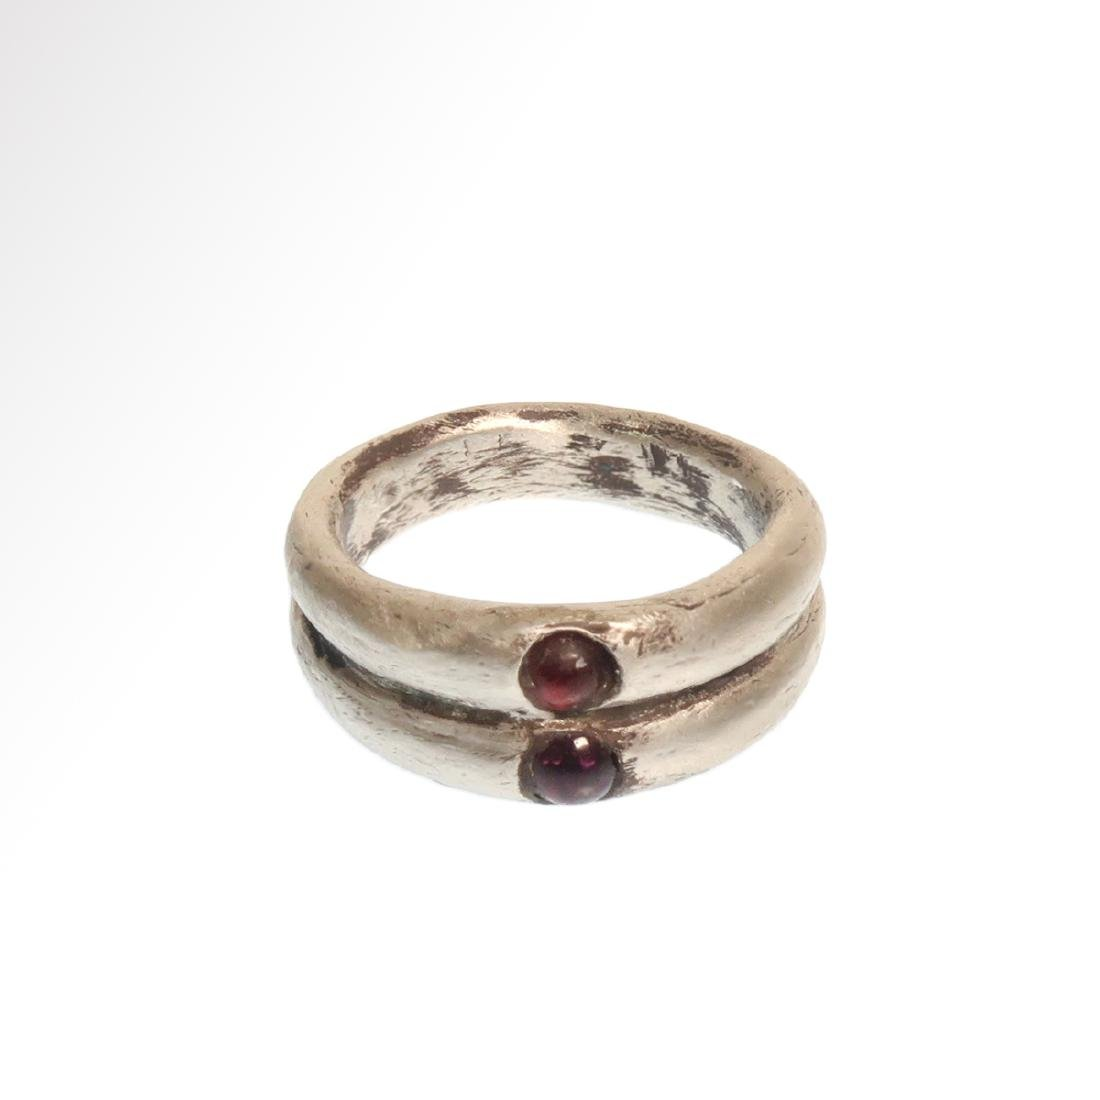 Roman Double Silver Ring with Garnets, c. 3rd Century - 3